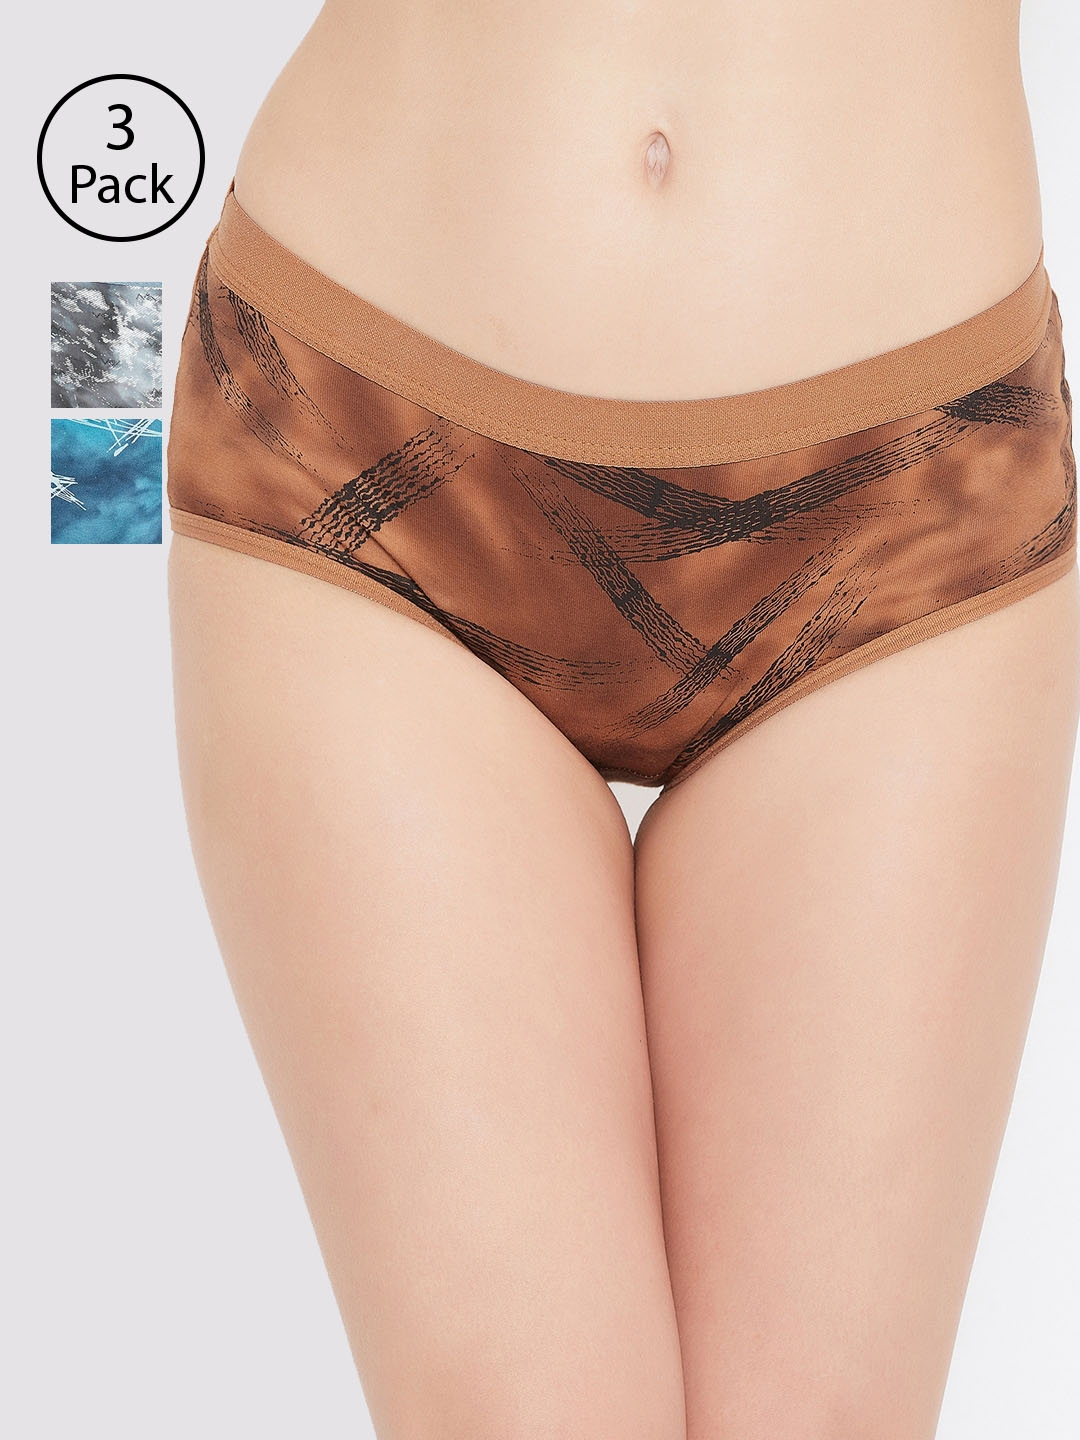 Leading Lady Women Pack of 3 Assorted Hipster Briefs L 7 GRN BRN MG 3